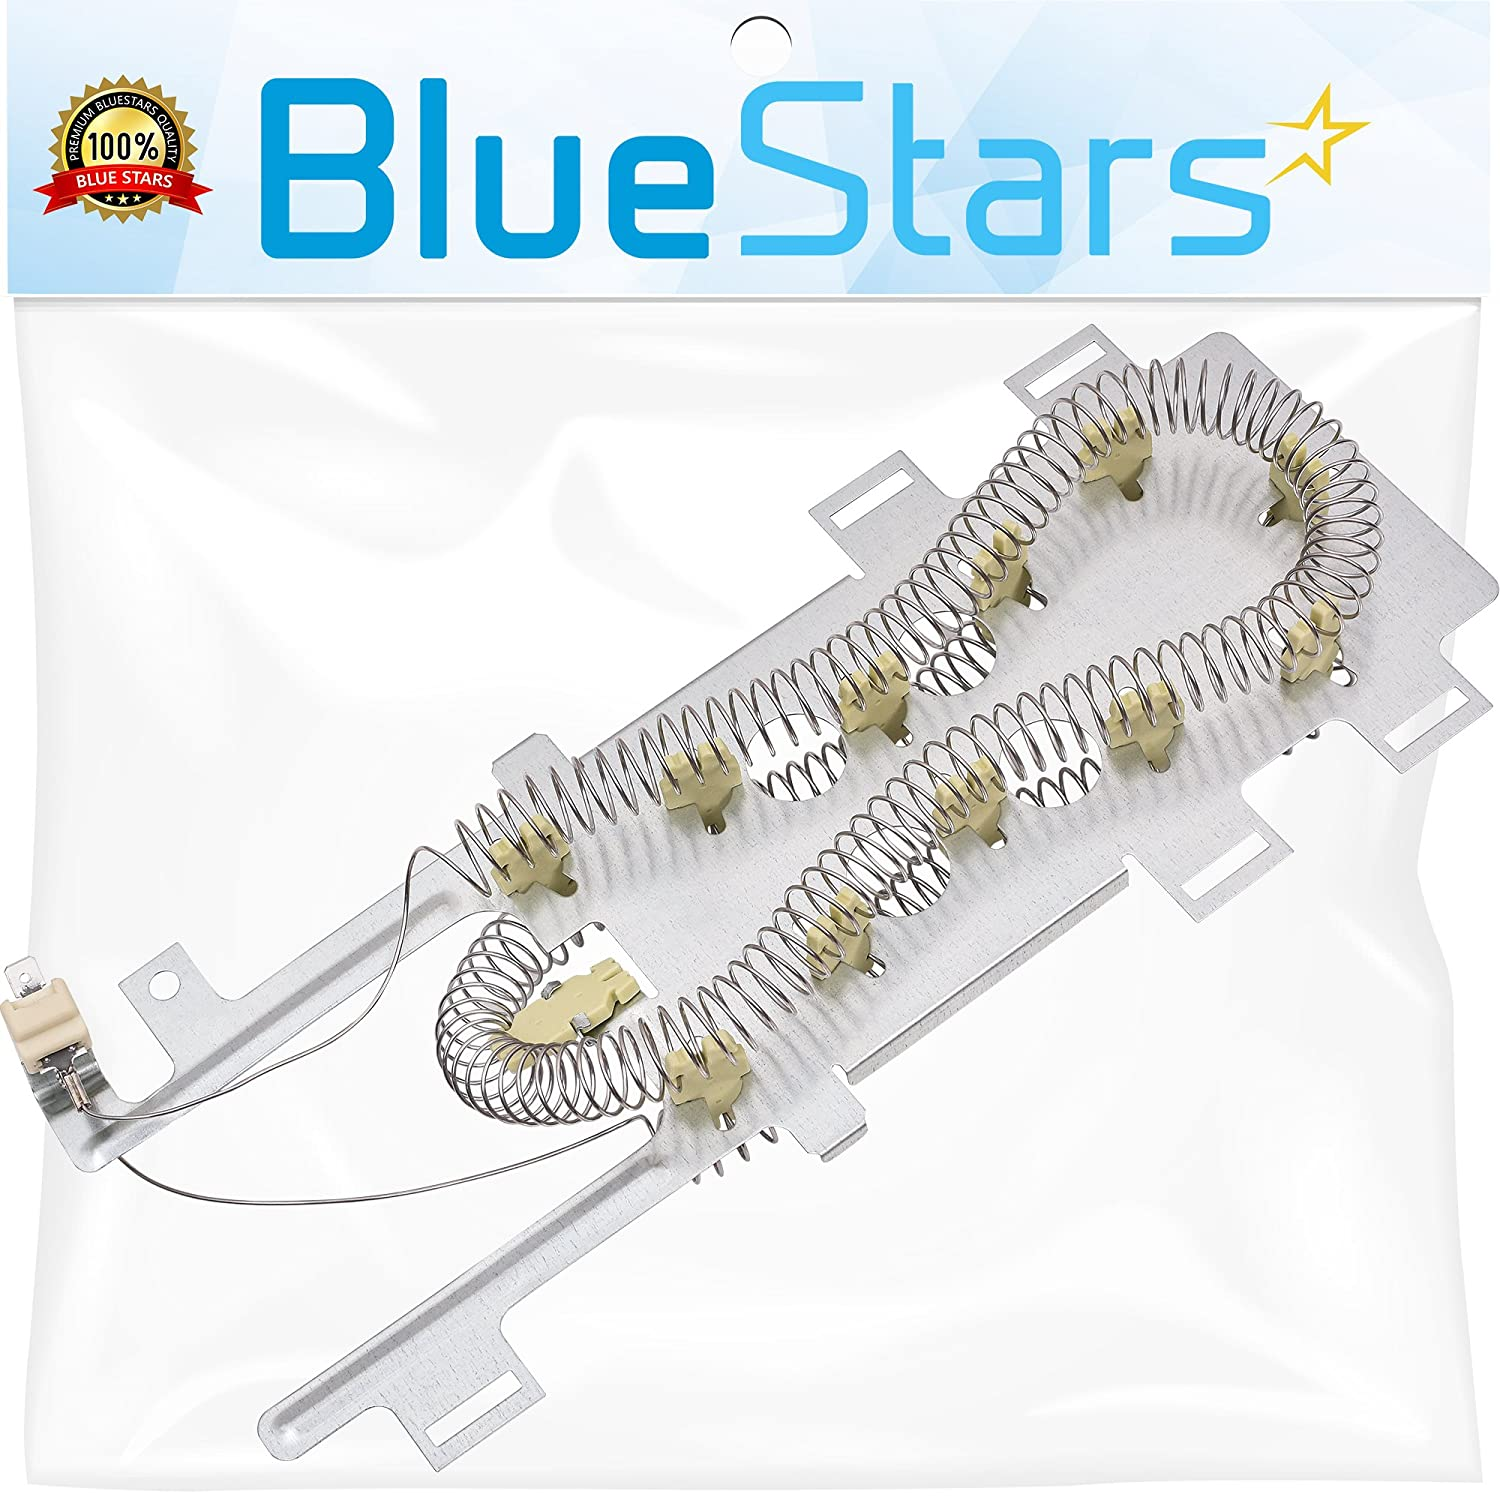 Ultra Durable 8544771 Dryer Heating Element Replacement Part by Blue Stars – Exact Fit For Whirlpool & Kenmore Dryers – Replaces W10836011 WP8544771VP